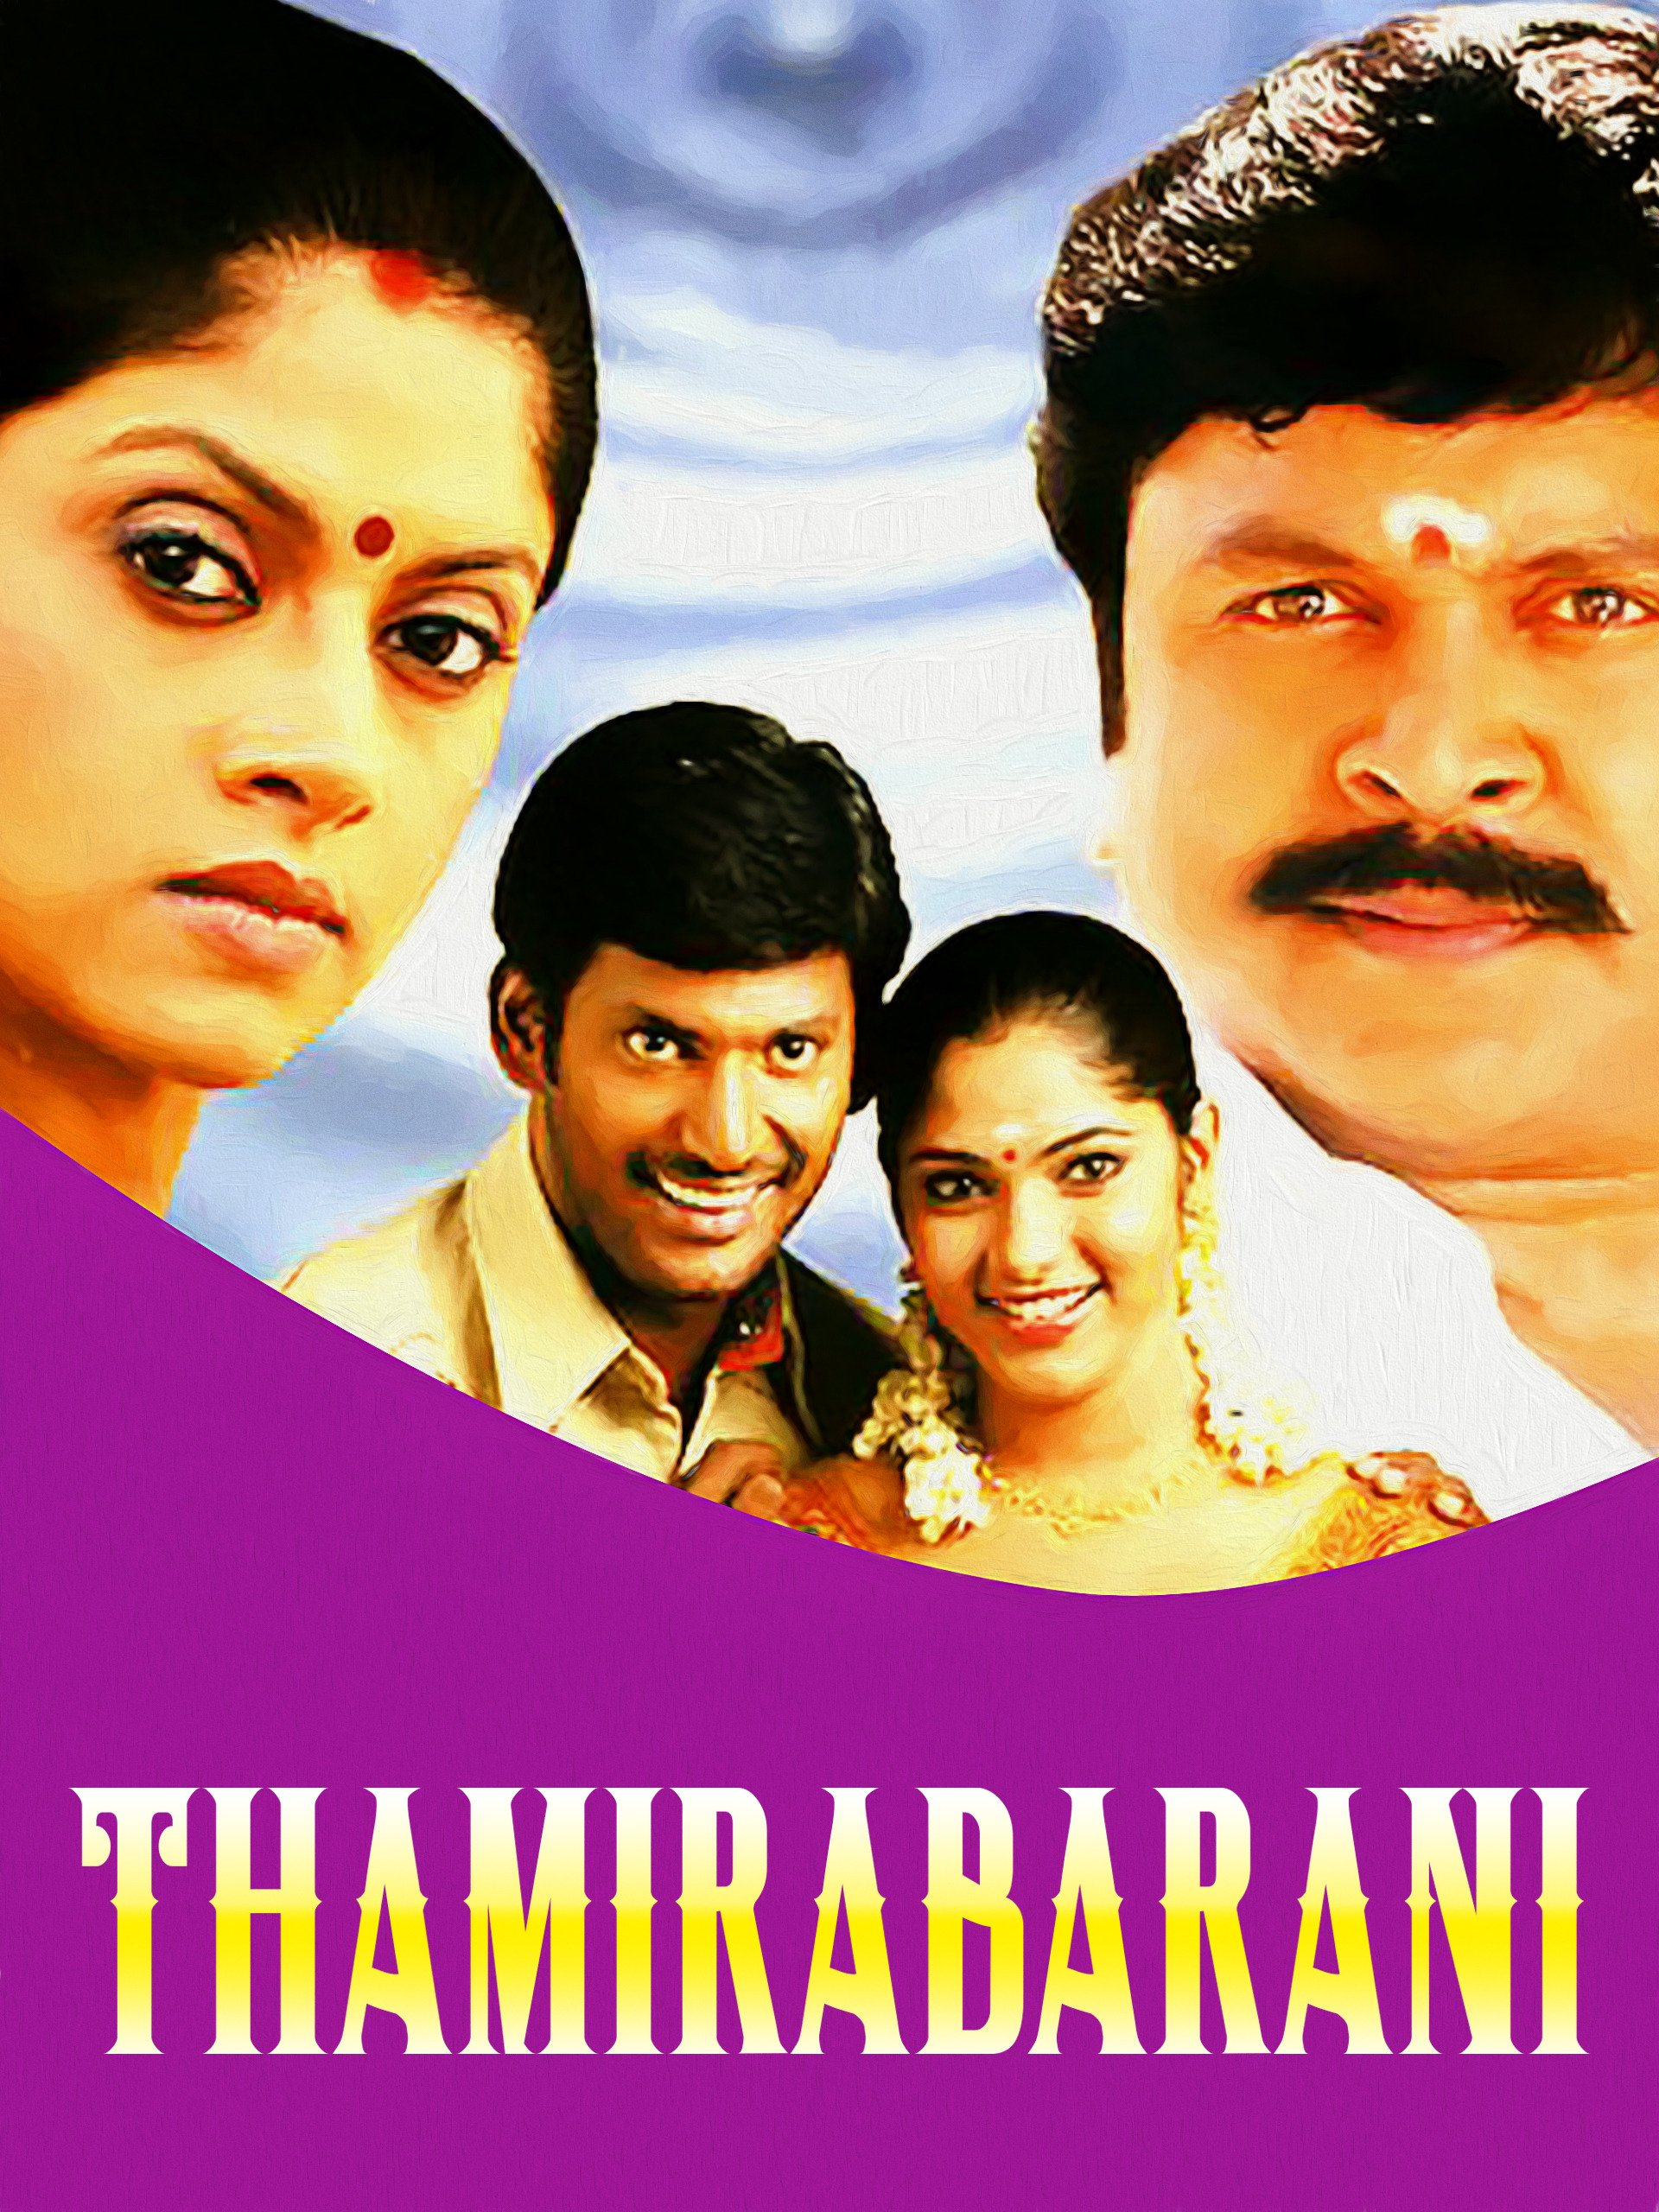 Photo of Thamirabarani Mp3 Songs Download in High Quality 320Kbps Audio